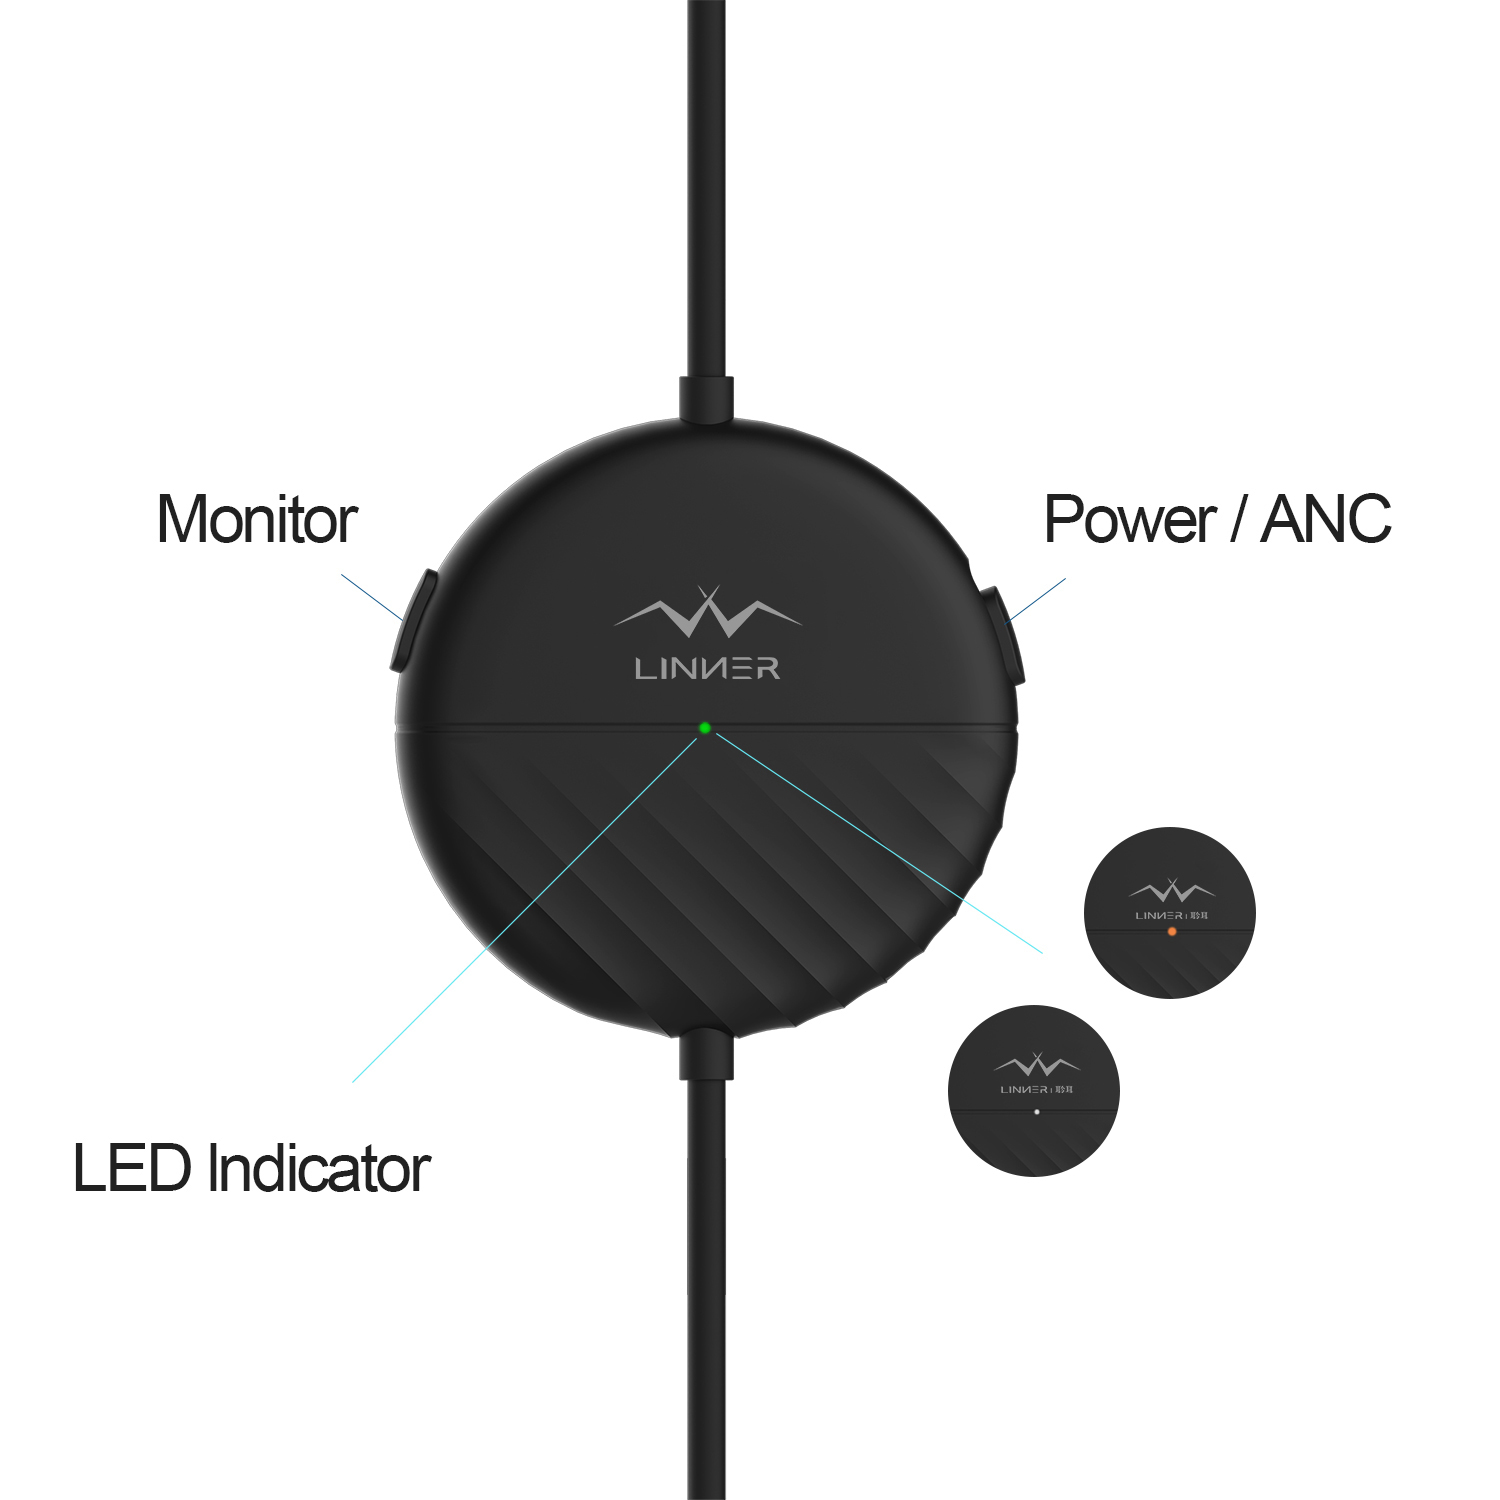 Full Button Control - 3 buttons in-line remote for full audio playback includes volume adjustment, track selection, and play/pause functionality. Built-In Microphone Enables for crispy phone calls and undisturbed voice transmission.